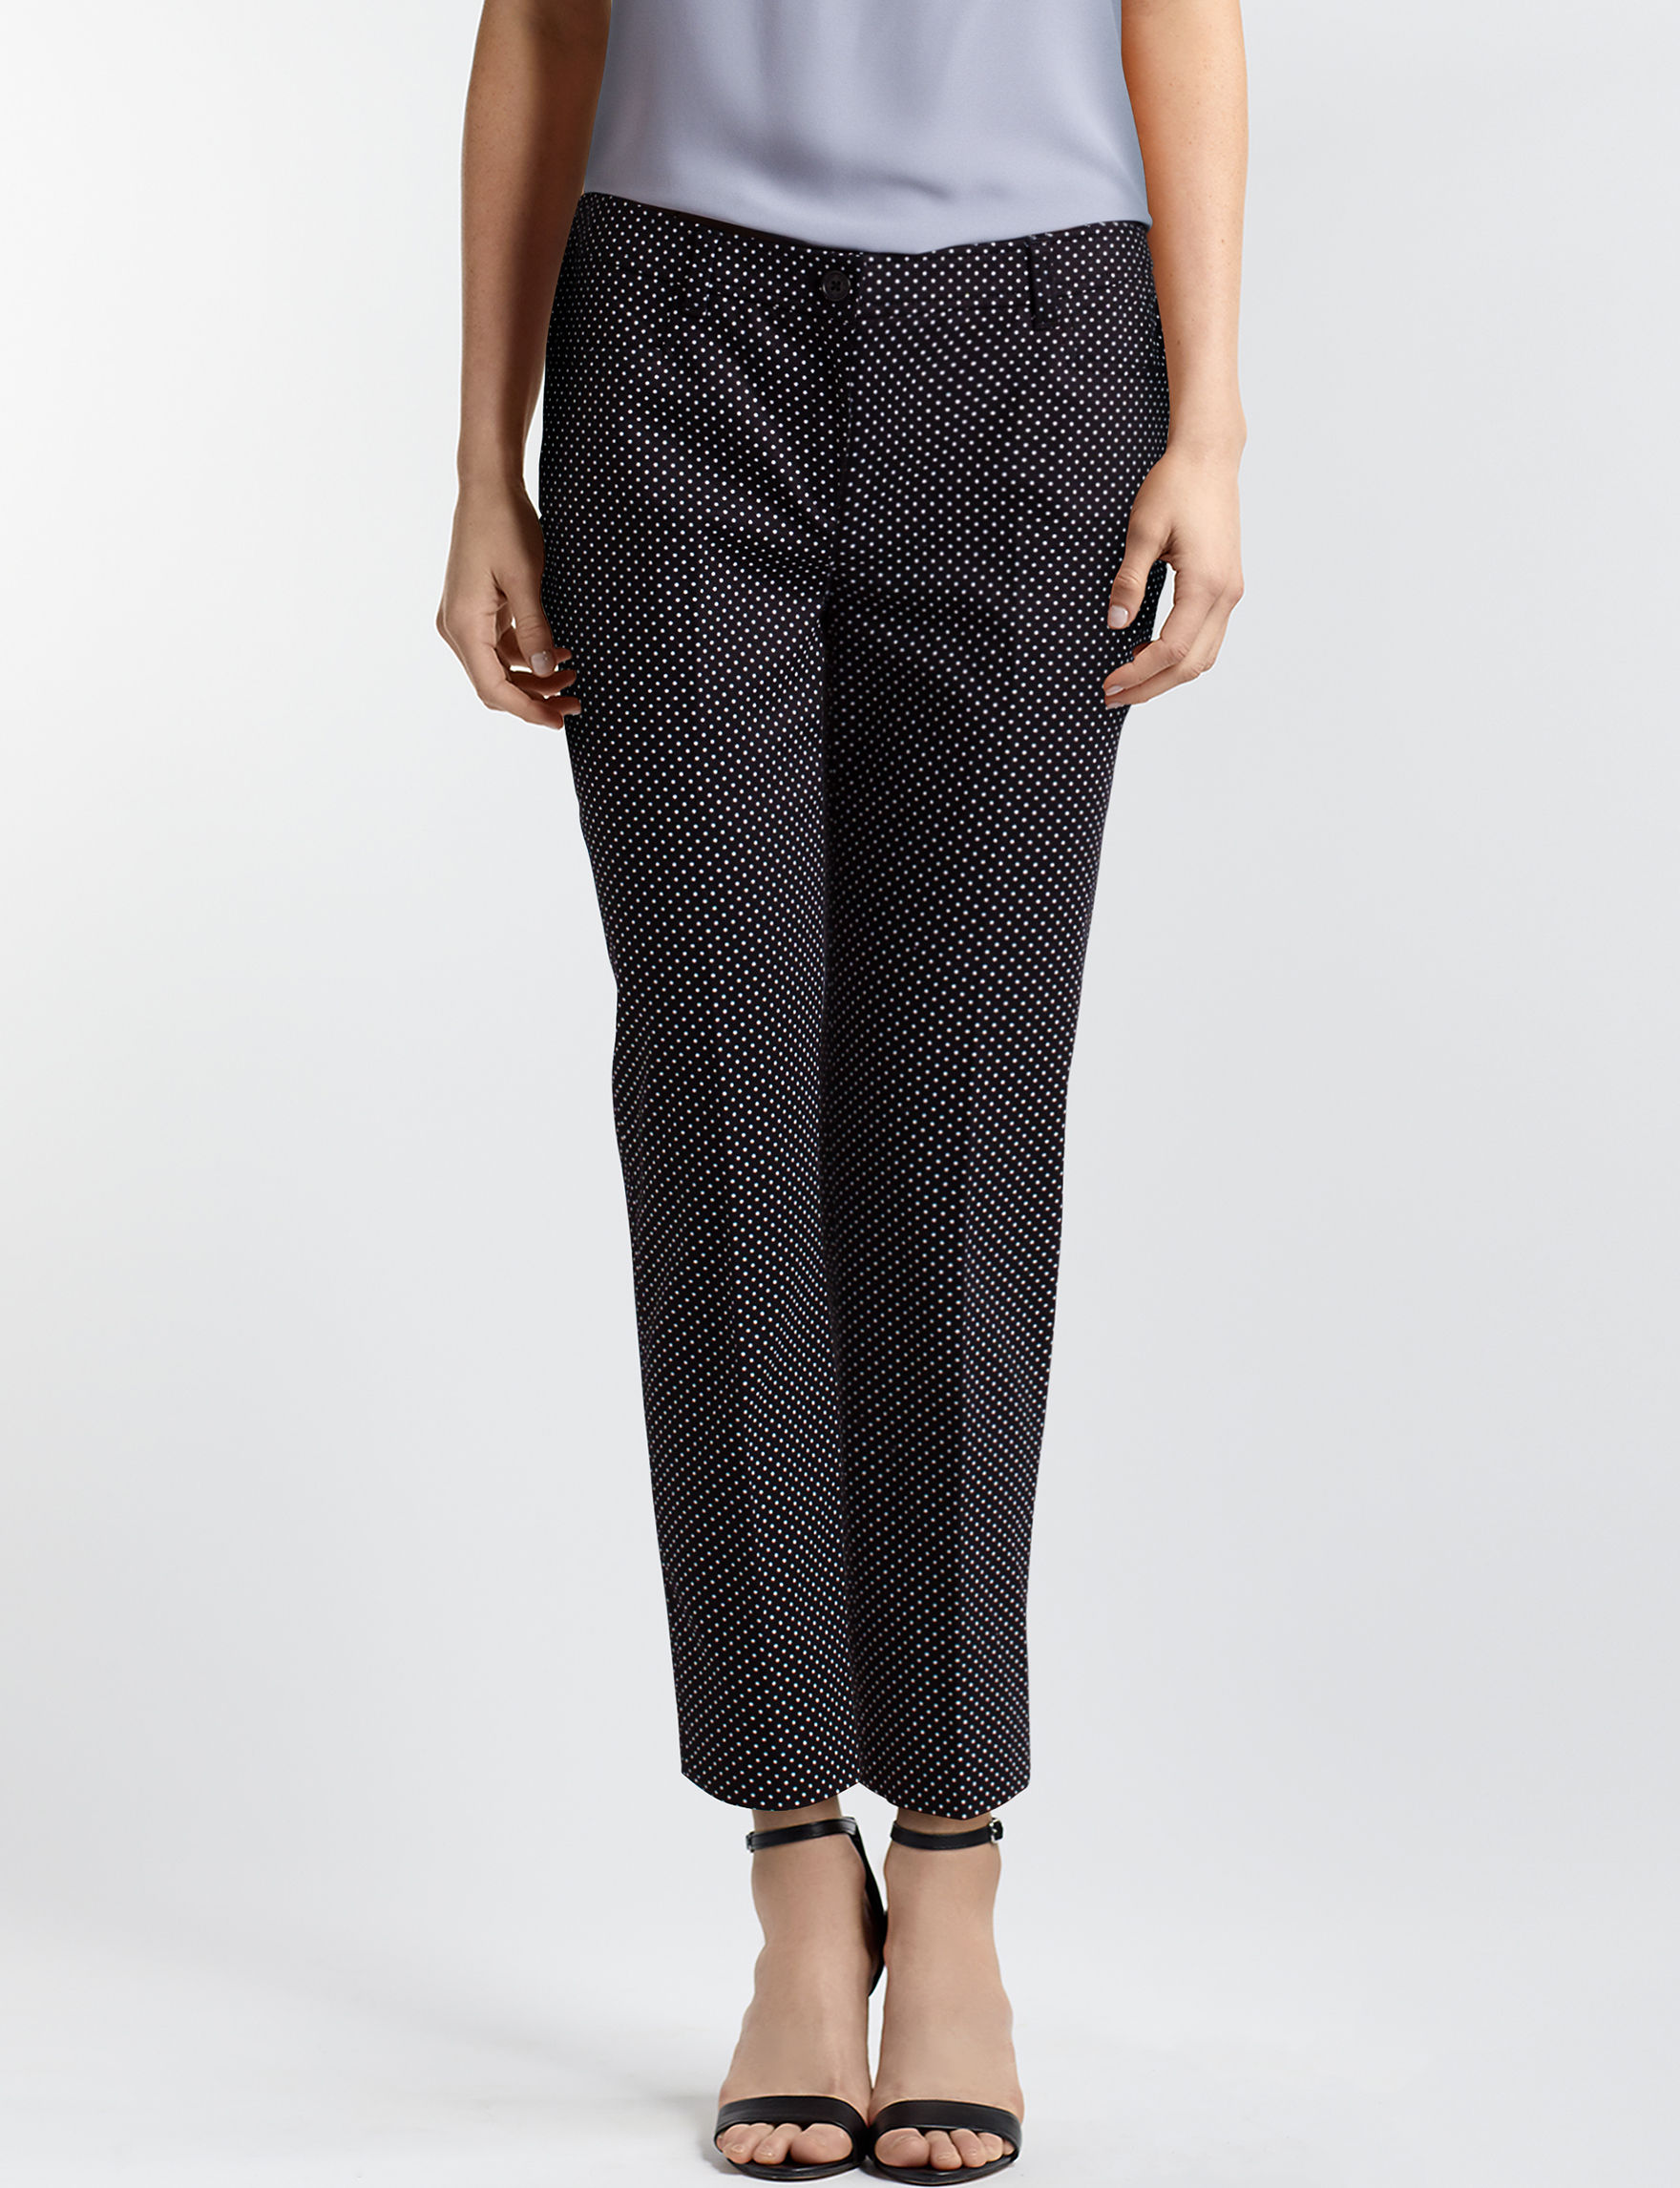 Anne Klein Black / White Soft Pants